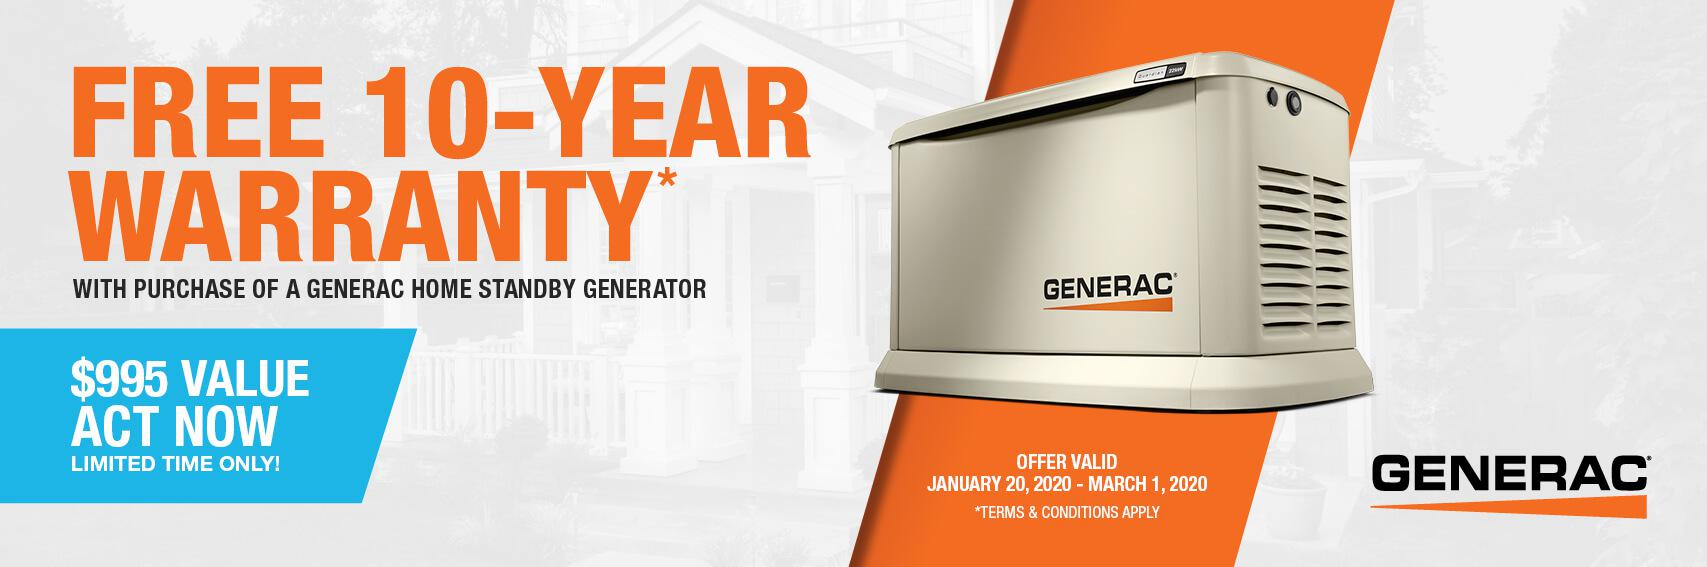 Homestandby Generator Deal | Warranty Offer | Generac Dealer | ALBION, PA